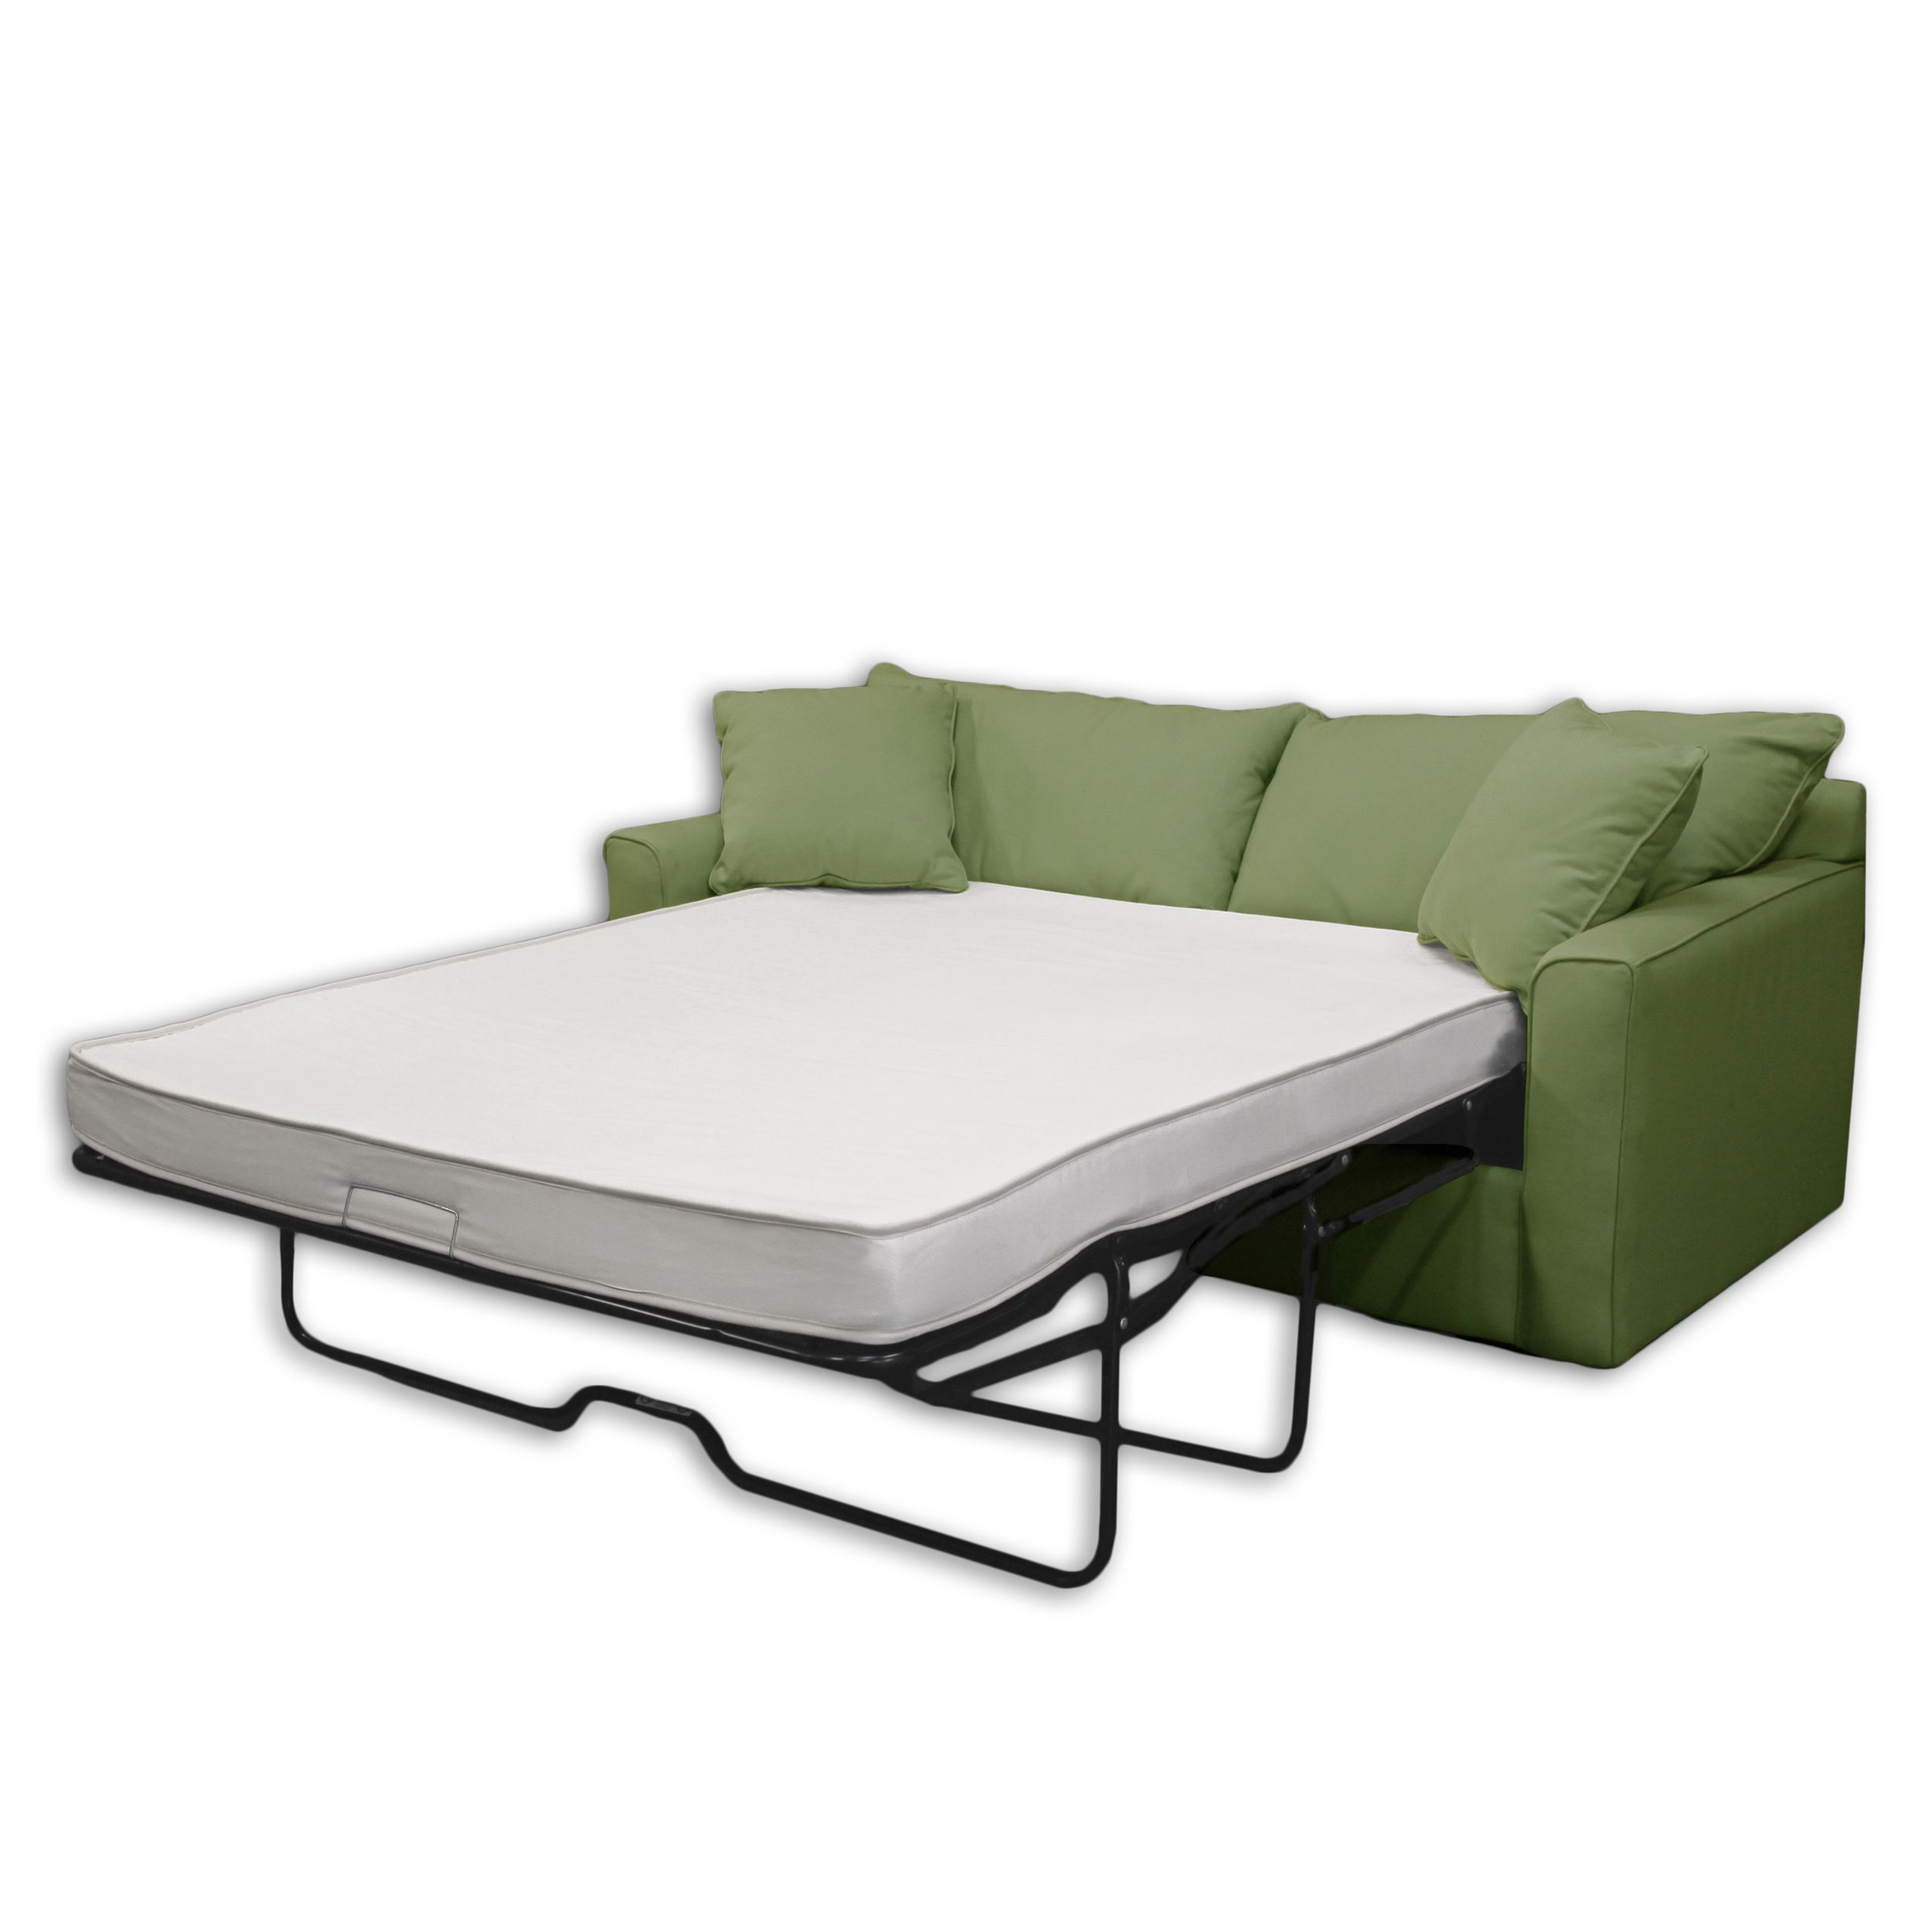 Select Luxury Flippable 4 inch Queen size Foam Sofa Bed Sleeper